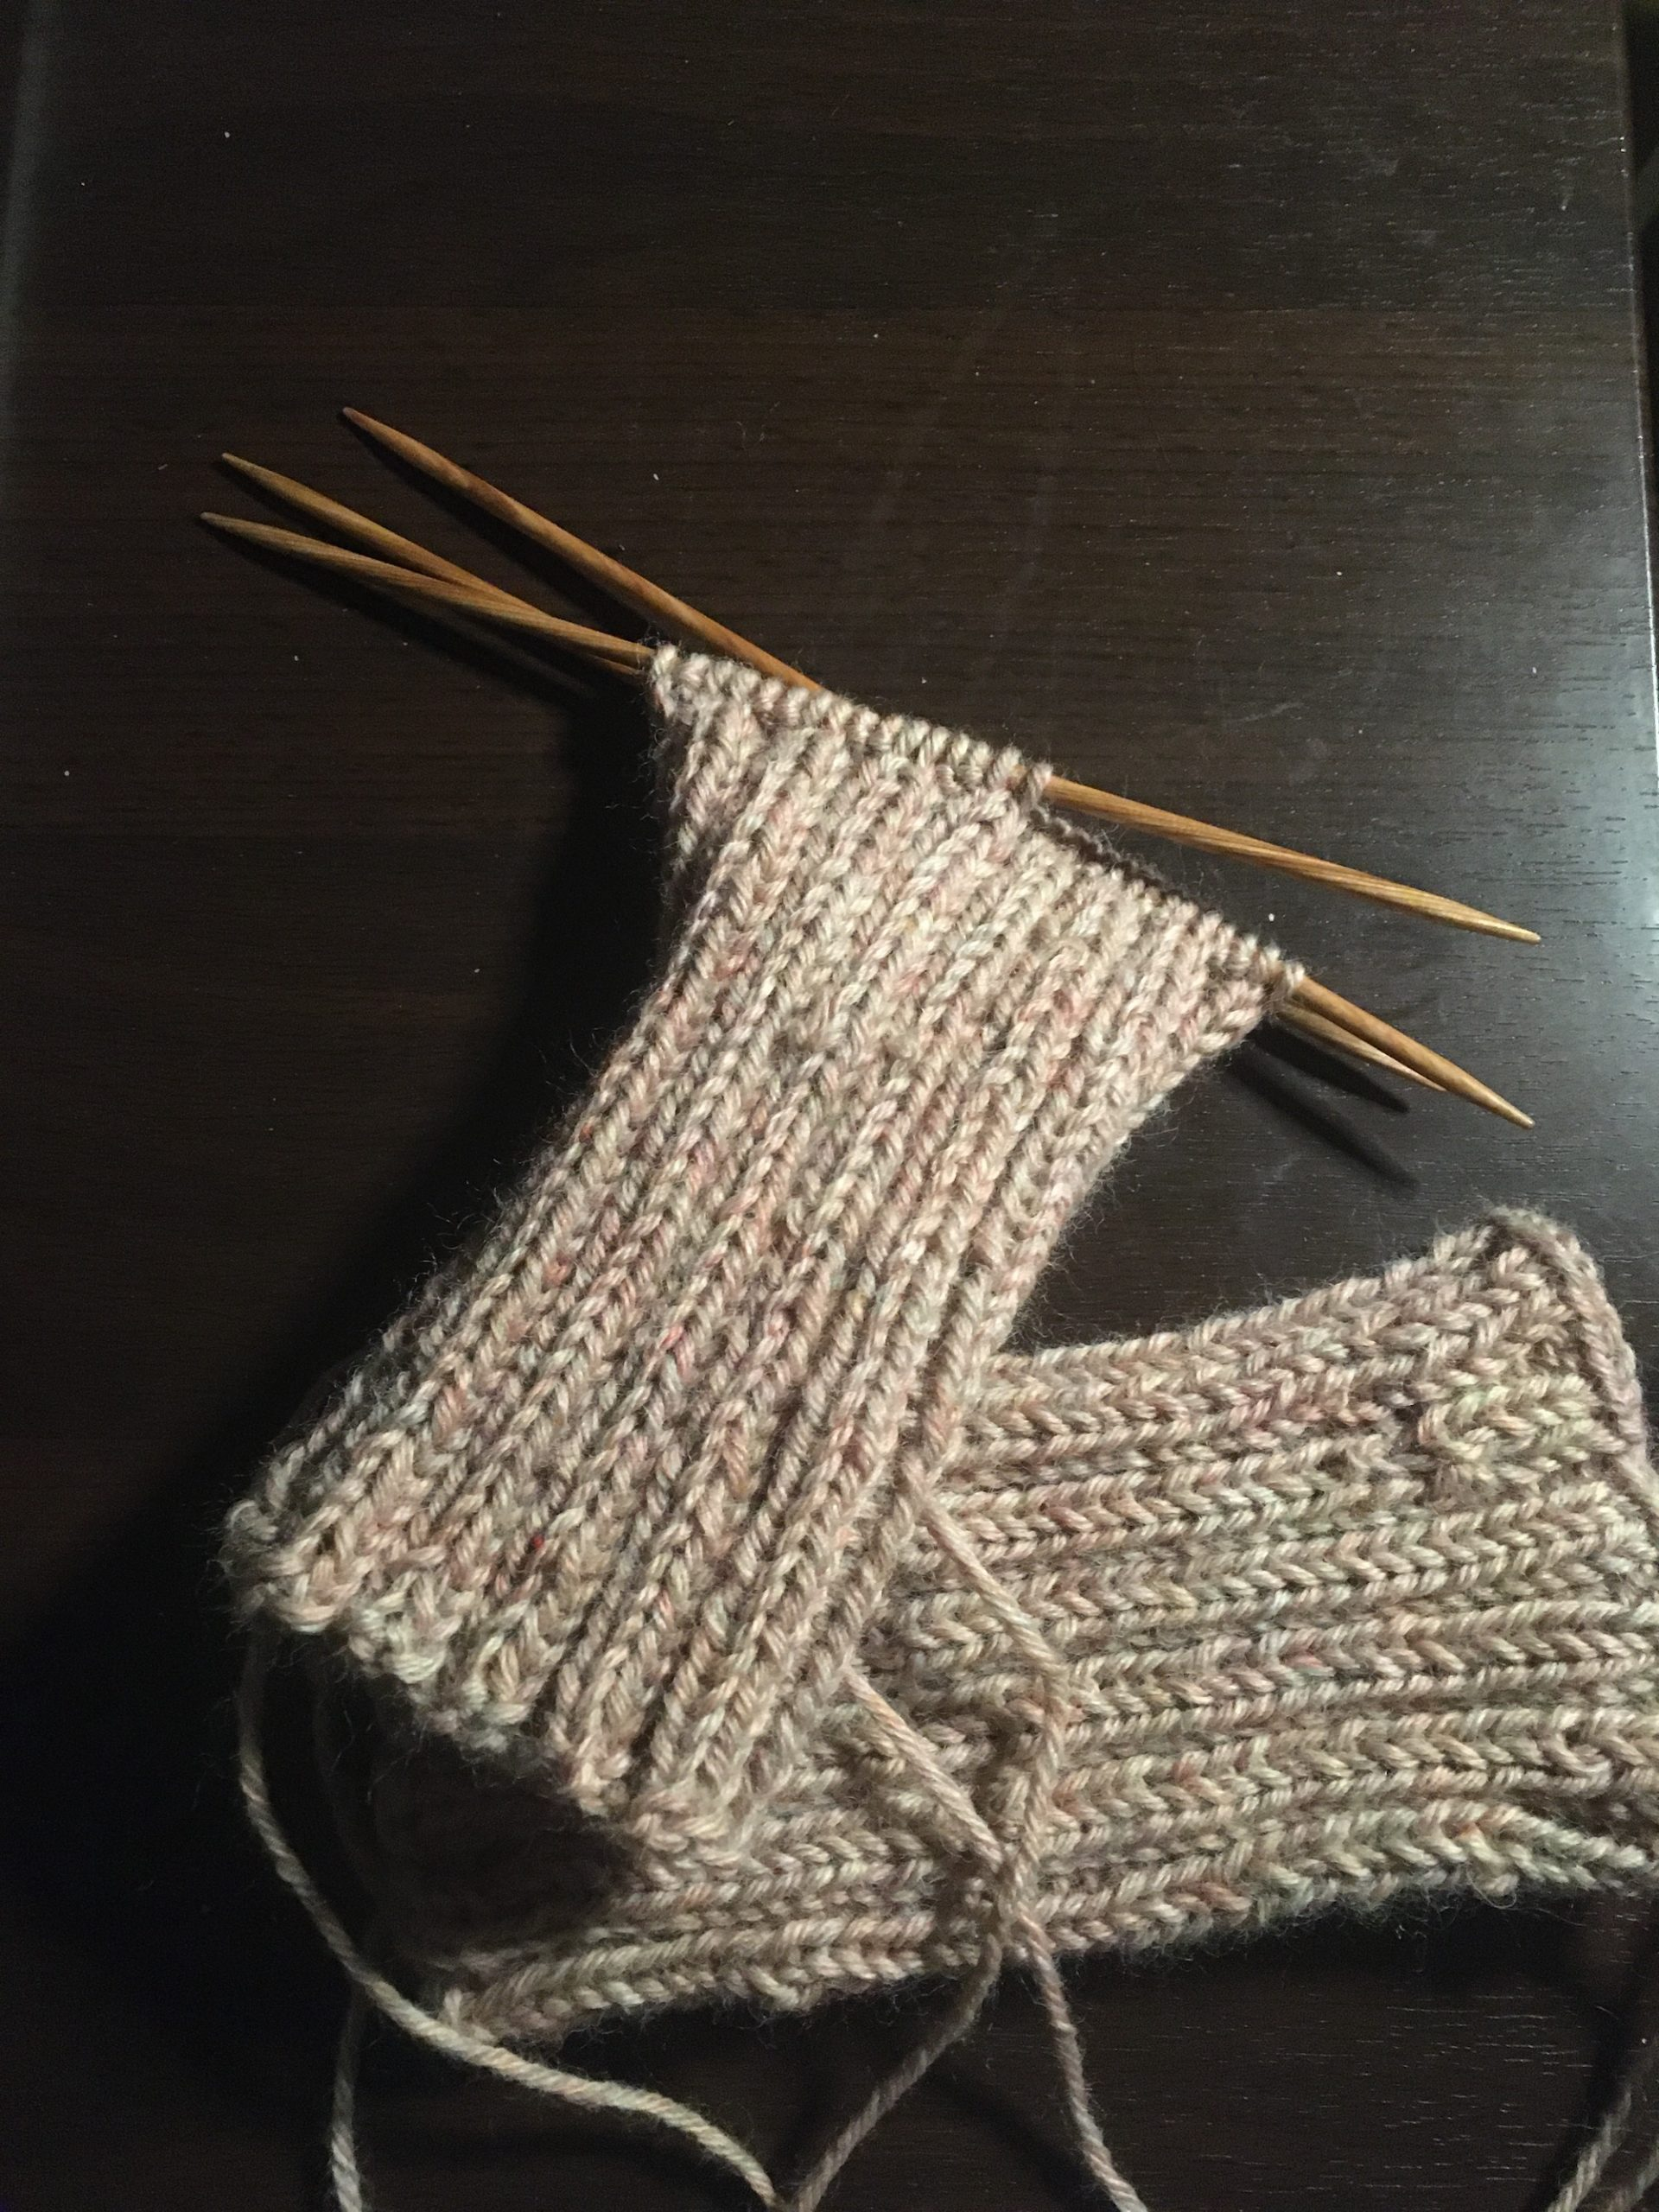 A pair of knit wristers (one done, one in progress and on the needles) in a pale khaki yarn.